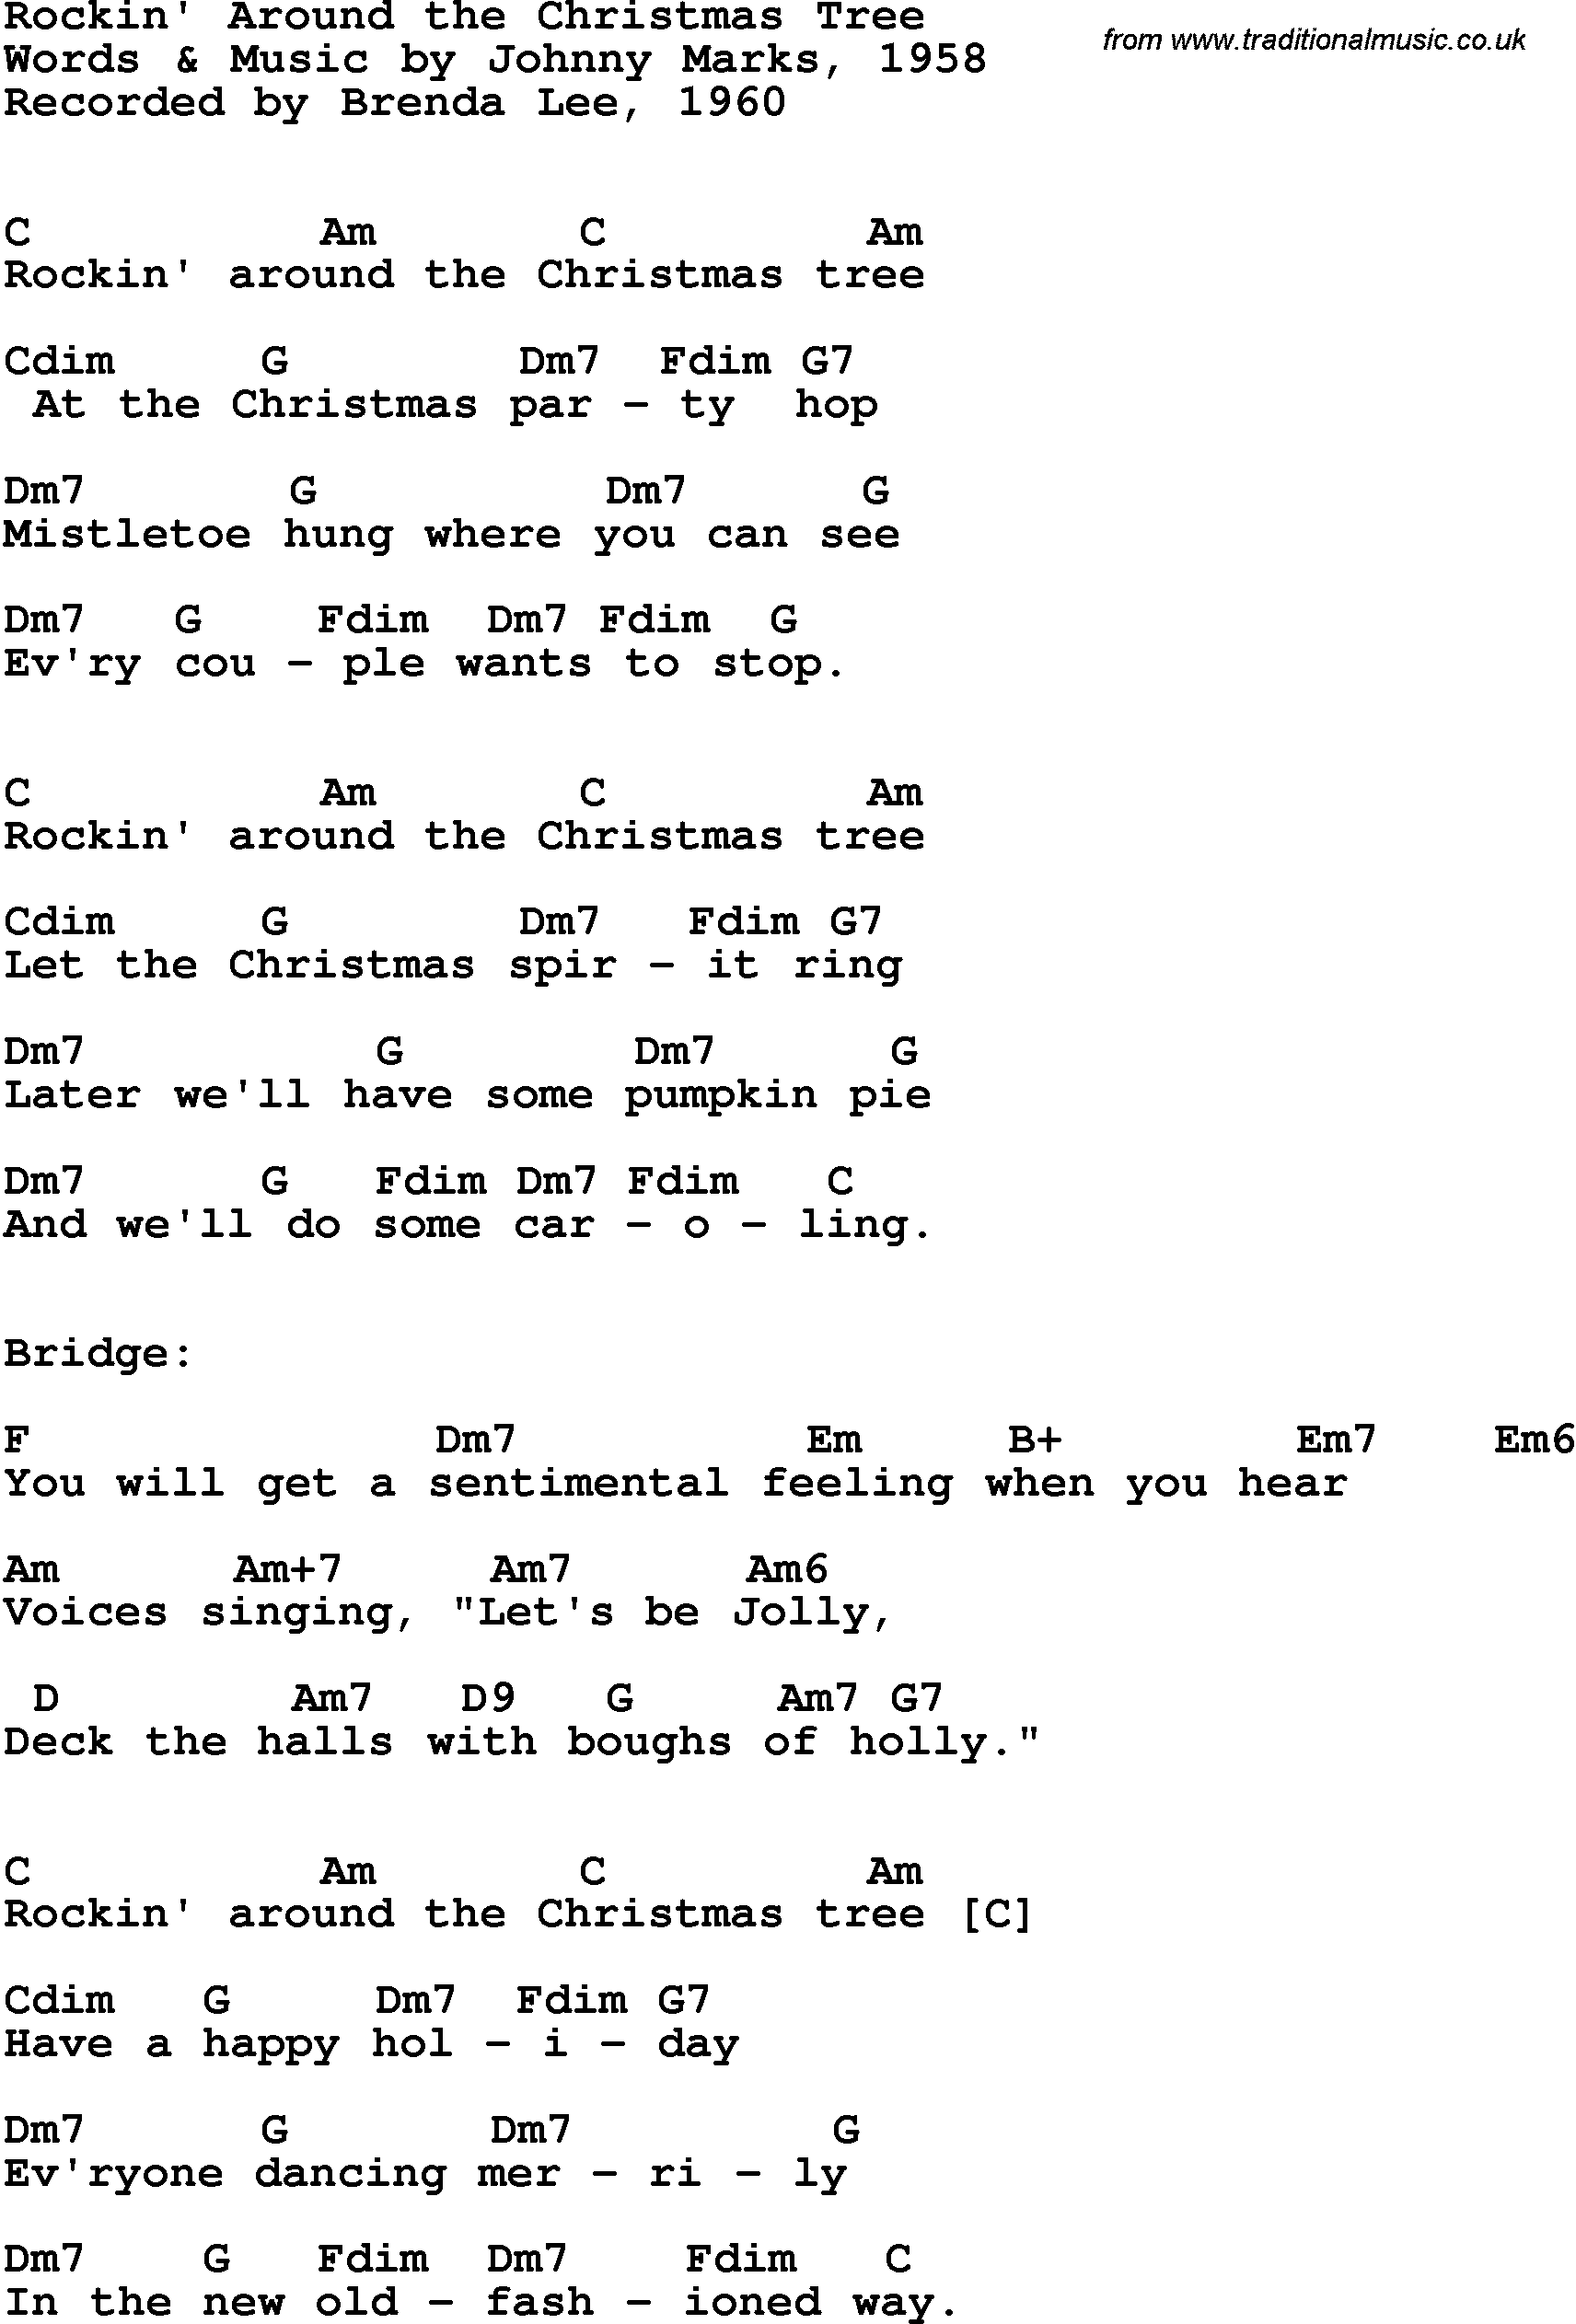 guitar chords for Rockin Around The Christmas Tree Brenda Lee 1960 ...